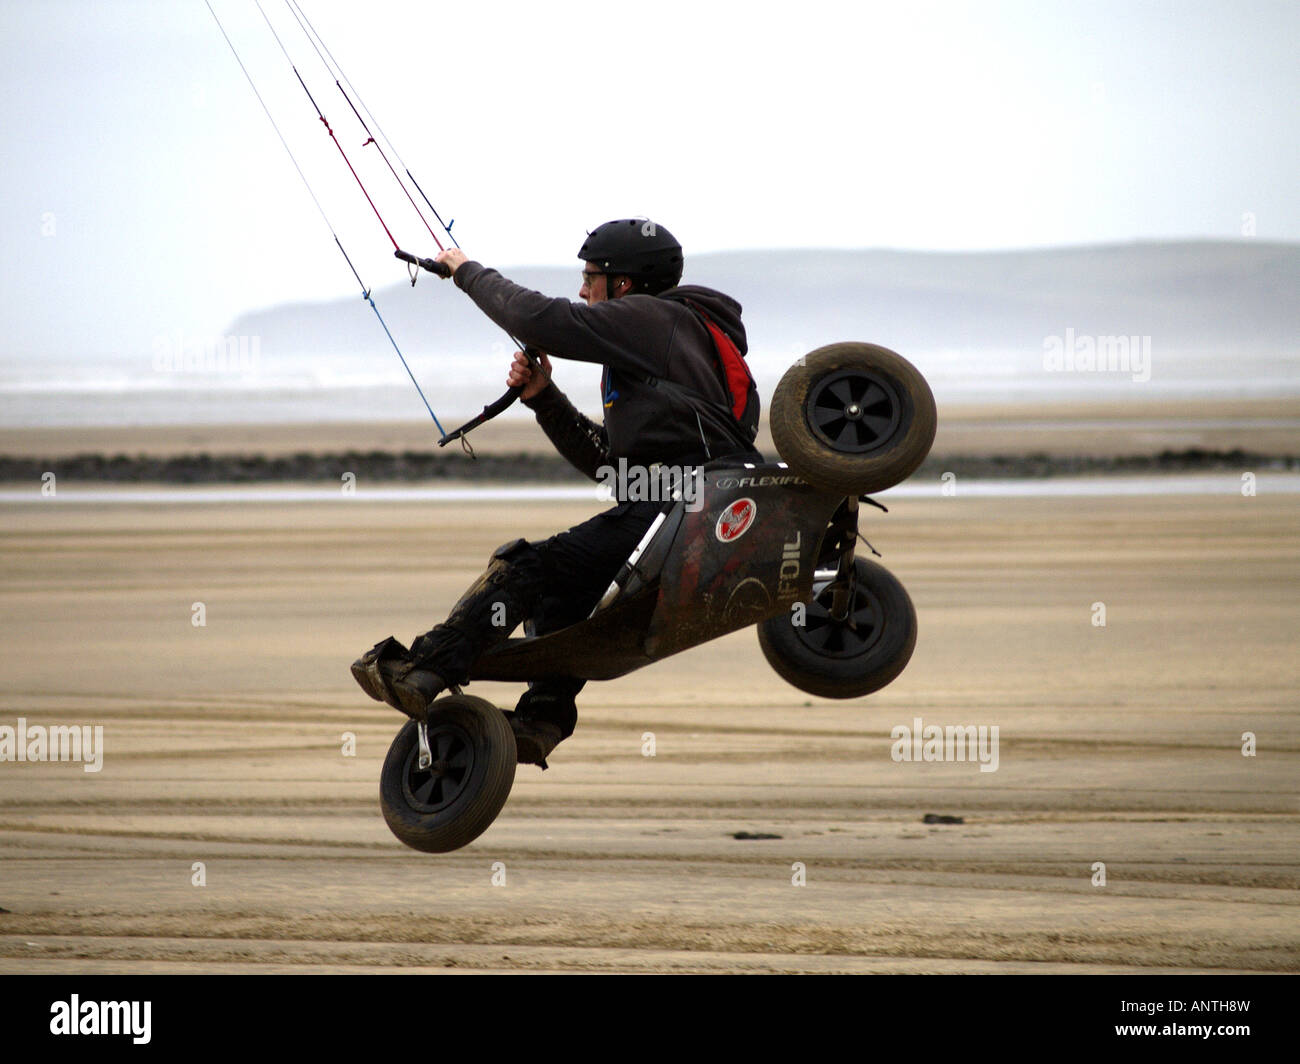 A parakarter doing tricks in the air. Stock Photo